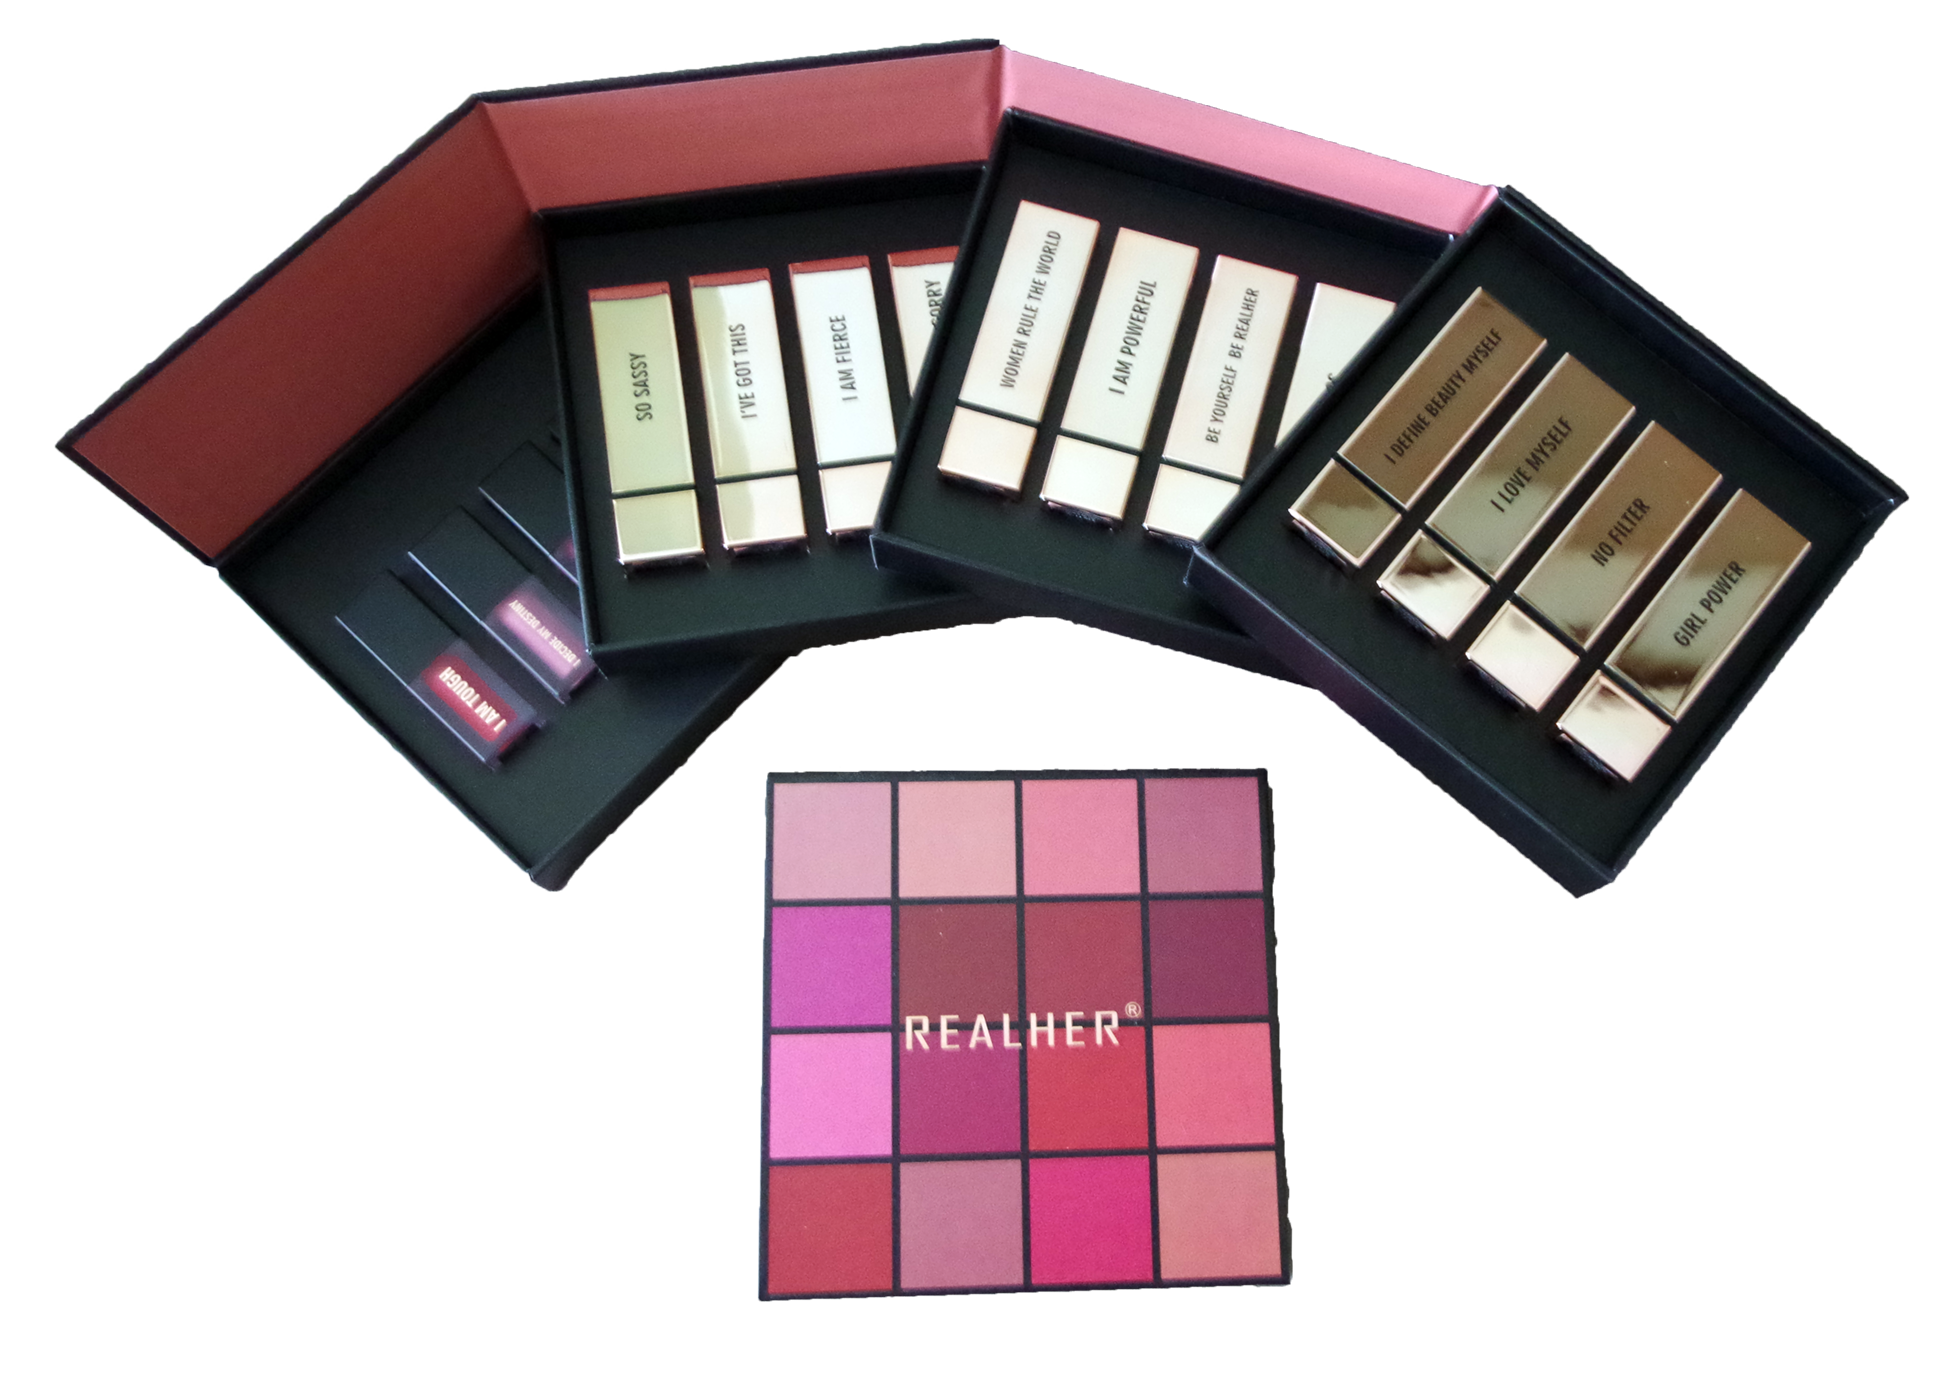 RealHer 16-piece lipstick collection